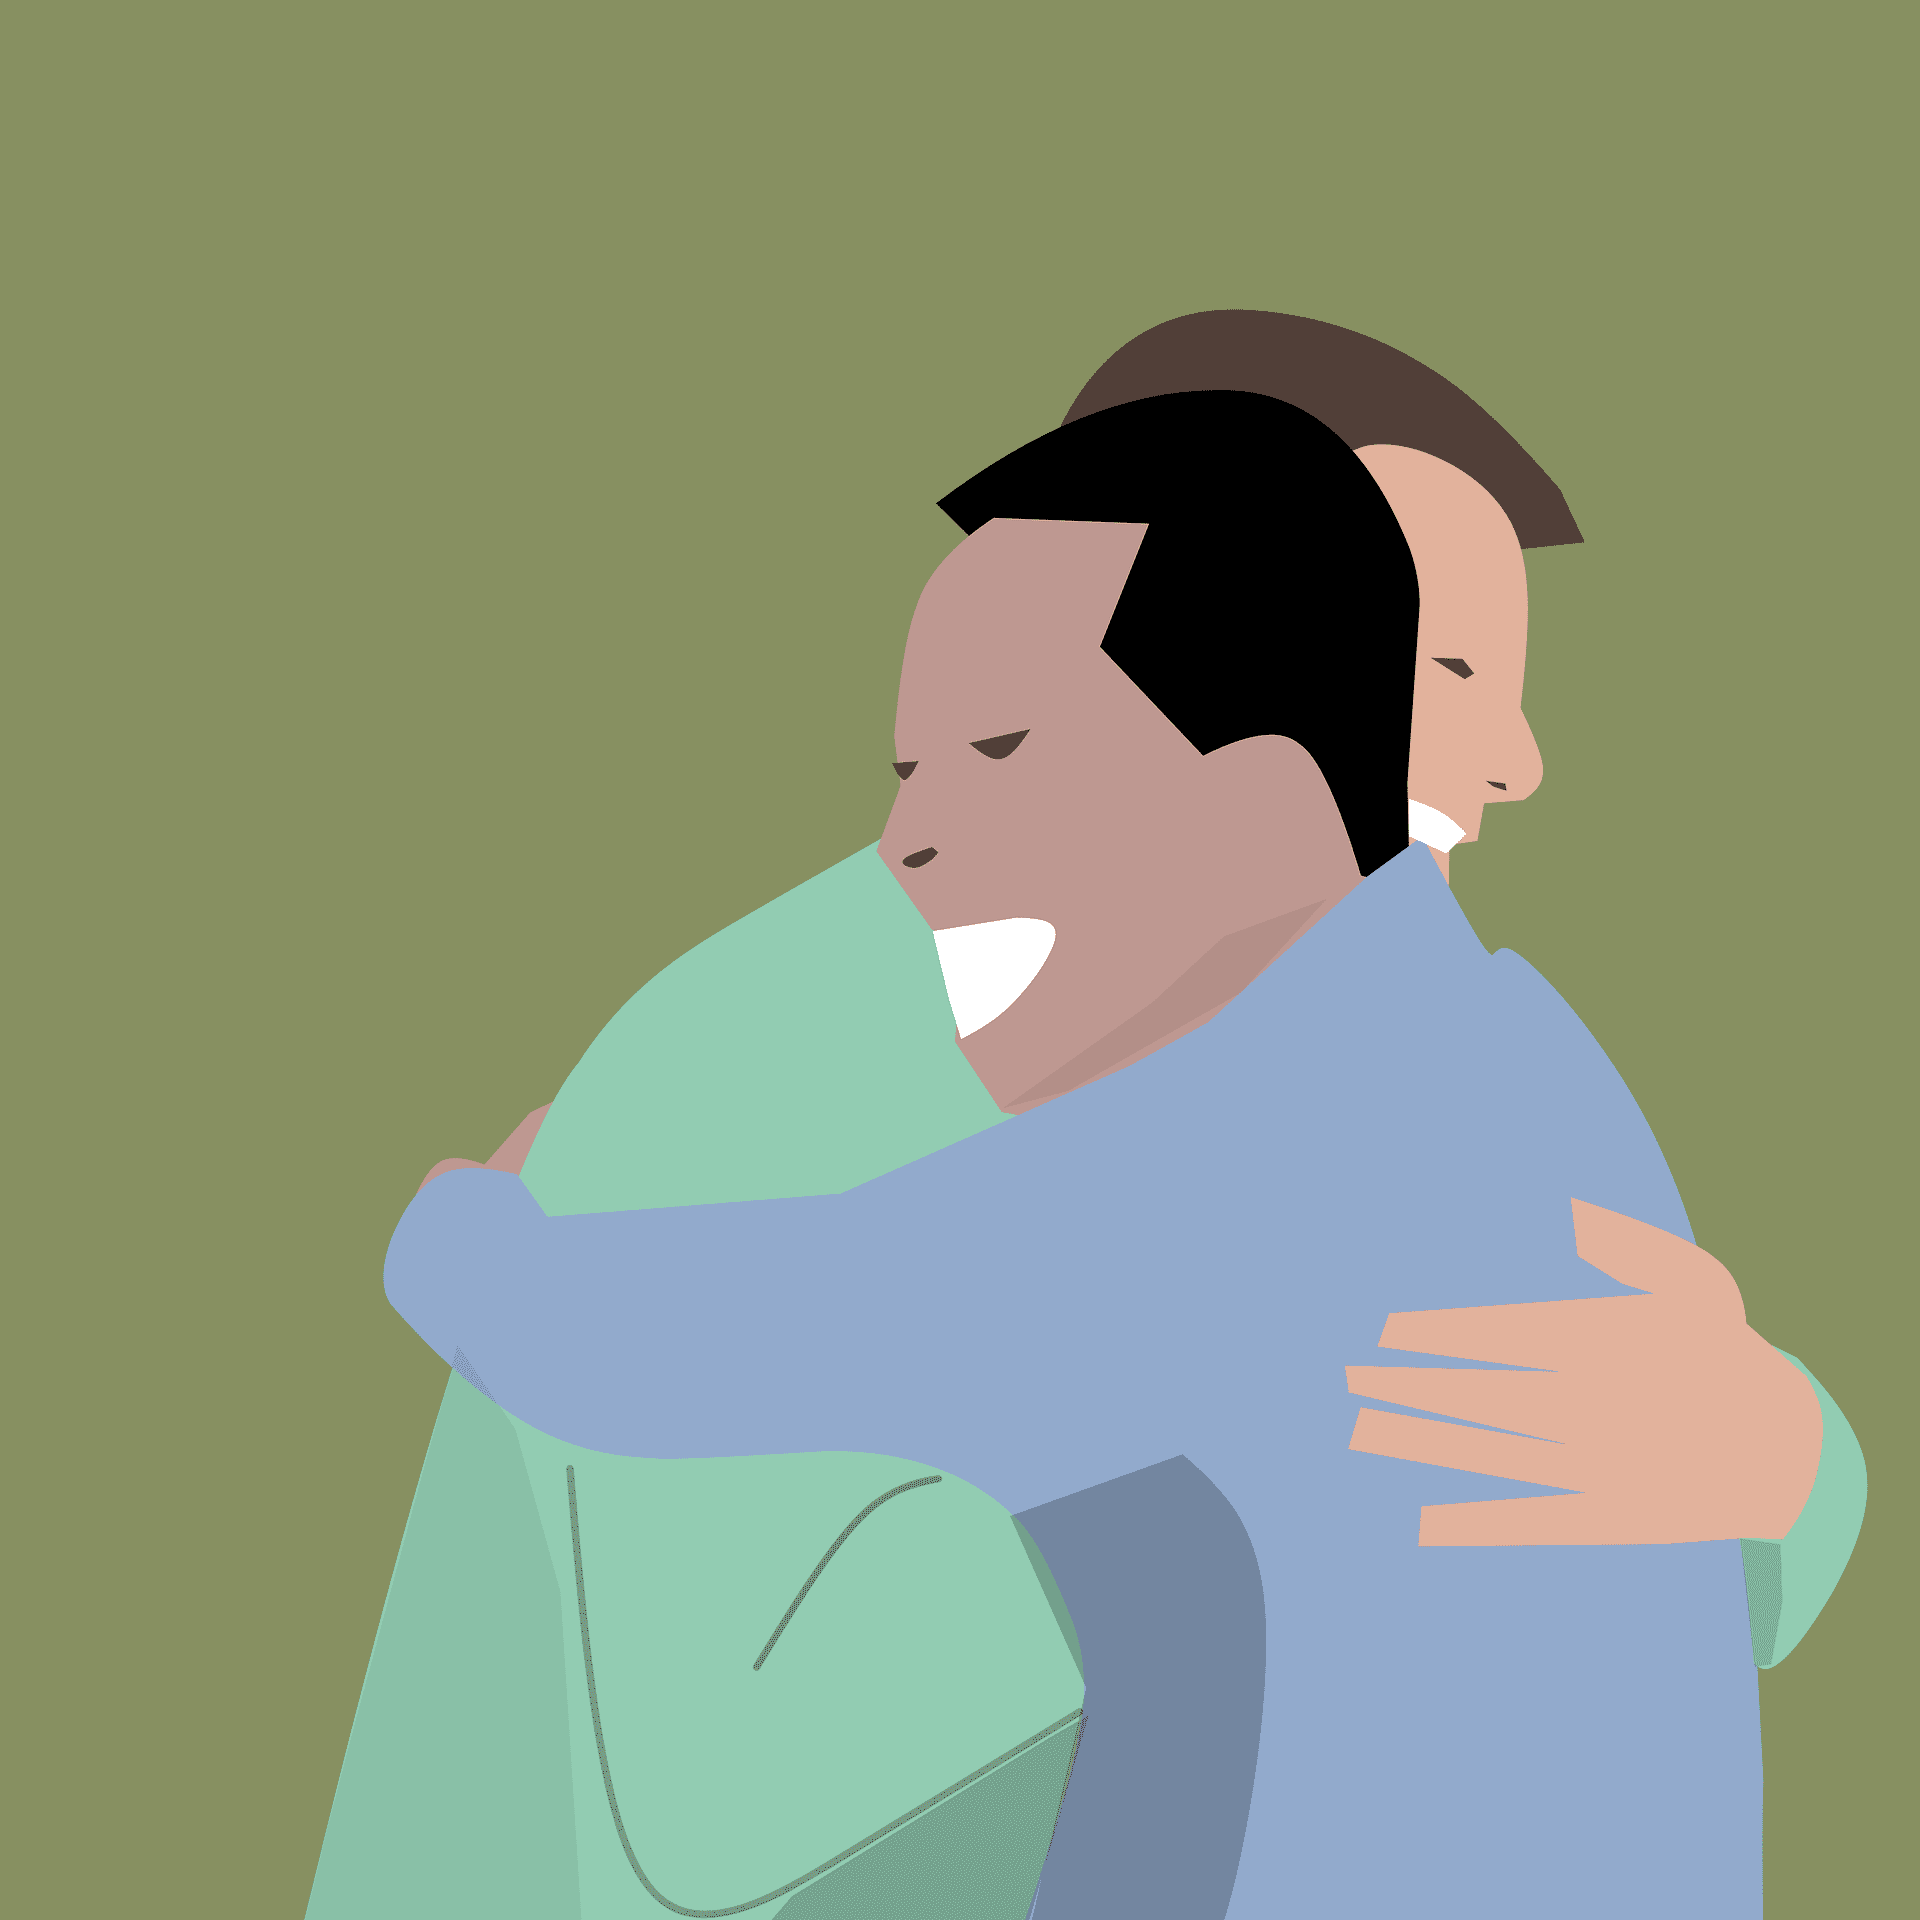 Bill was relived his son was okay, but where was his car? | Photo: Pixabay/mohamed Hassan